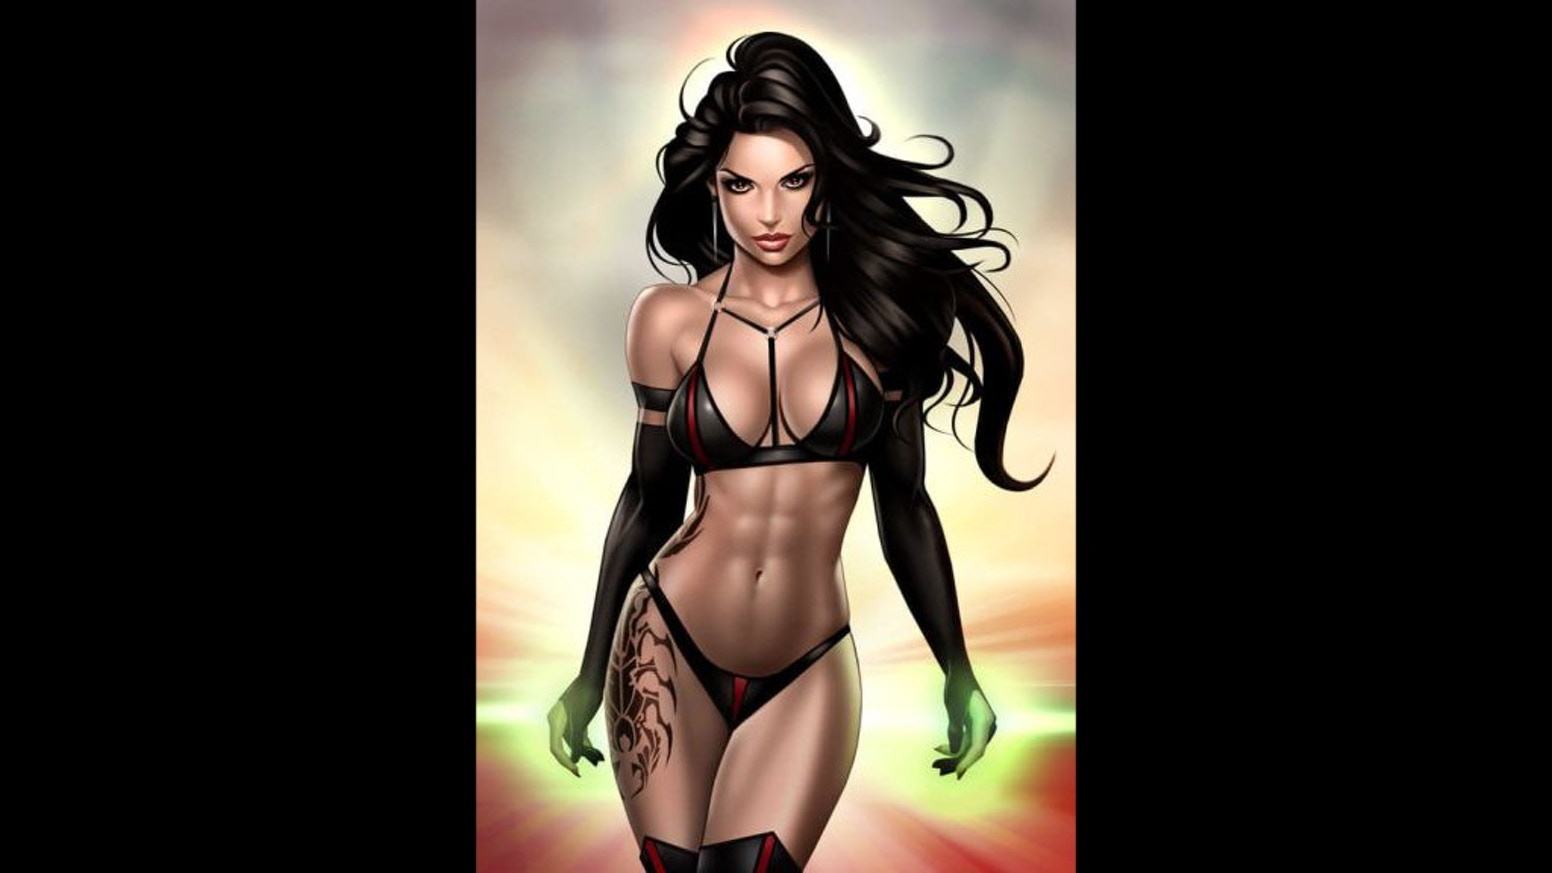 This project will fund the creation of the debut issue for a brand new superheroine, Scorpiana.